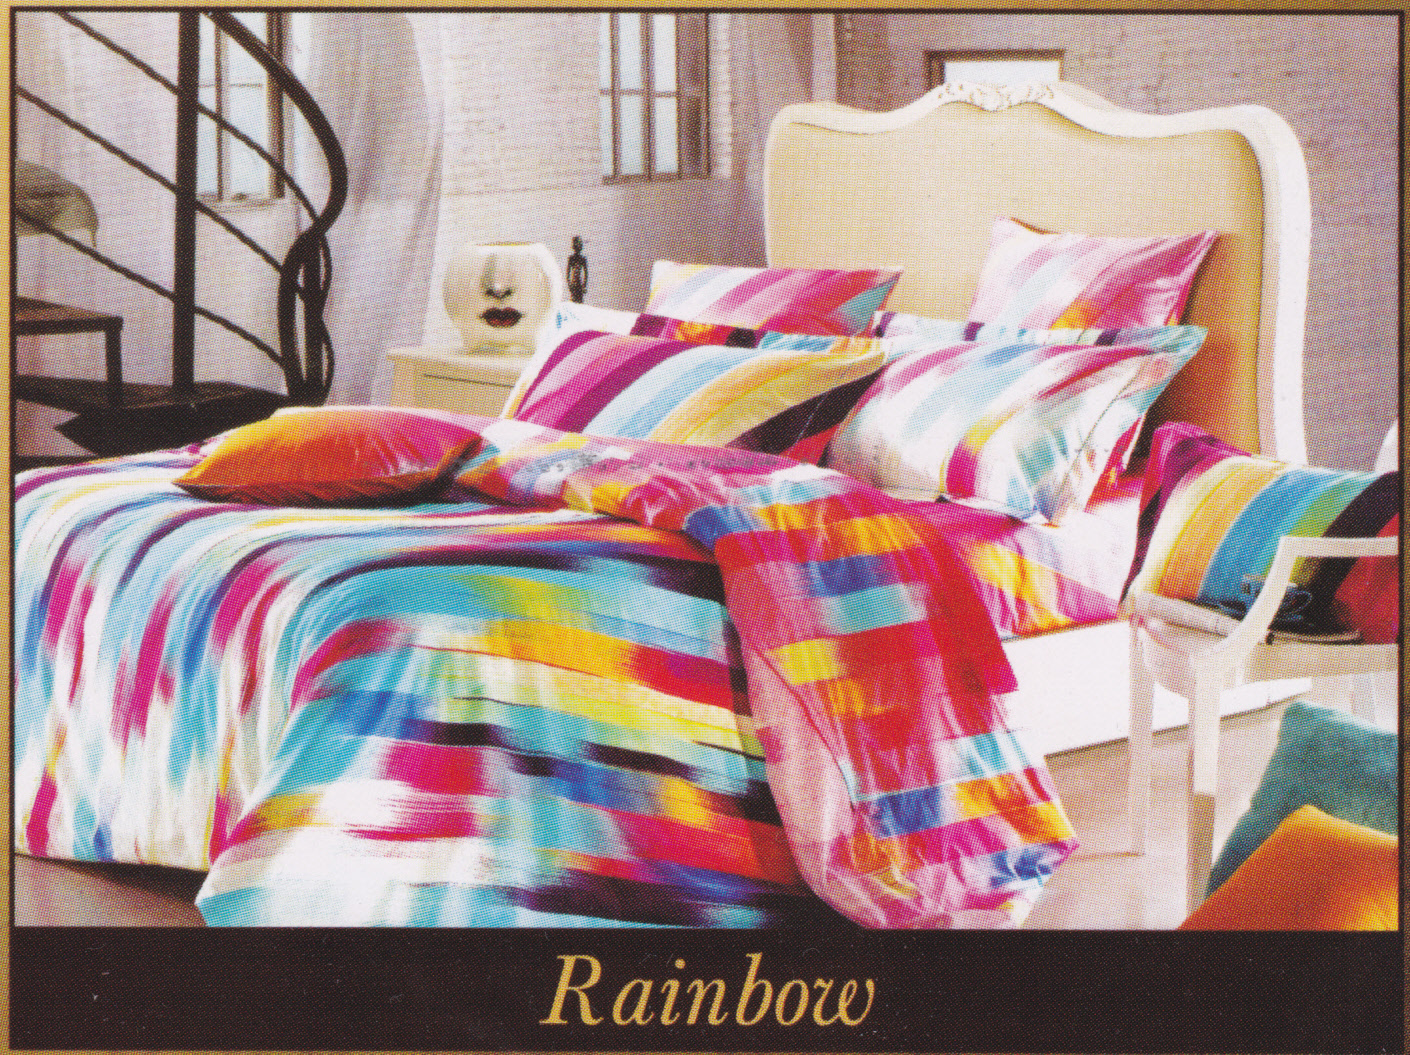 Sprei Grand Shyra Rainbow Toko Online Bed Cover Murah Jual